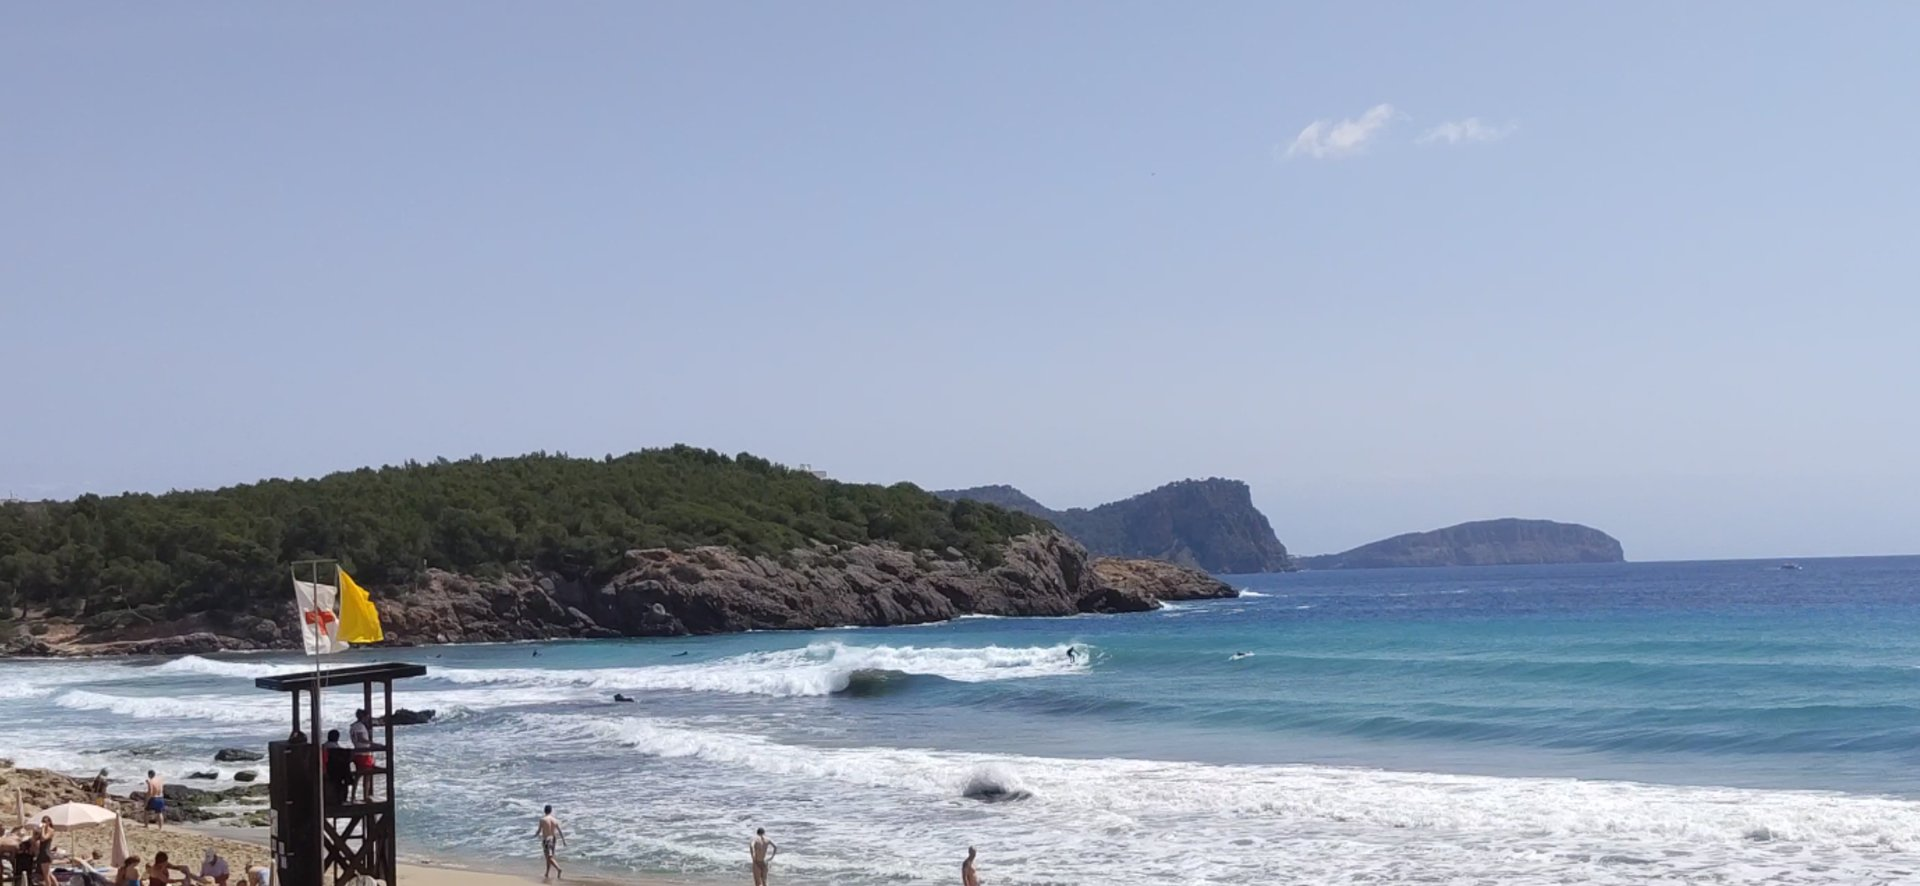 user1009289's photo of Cala Nova - Ibiza